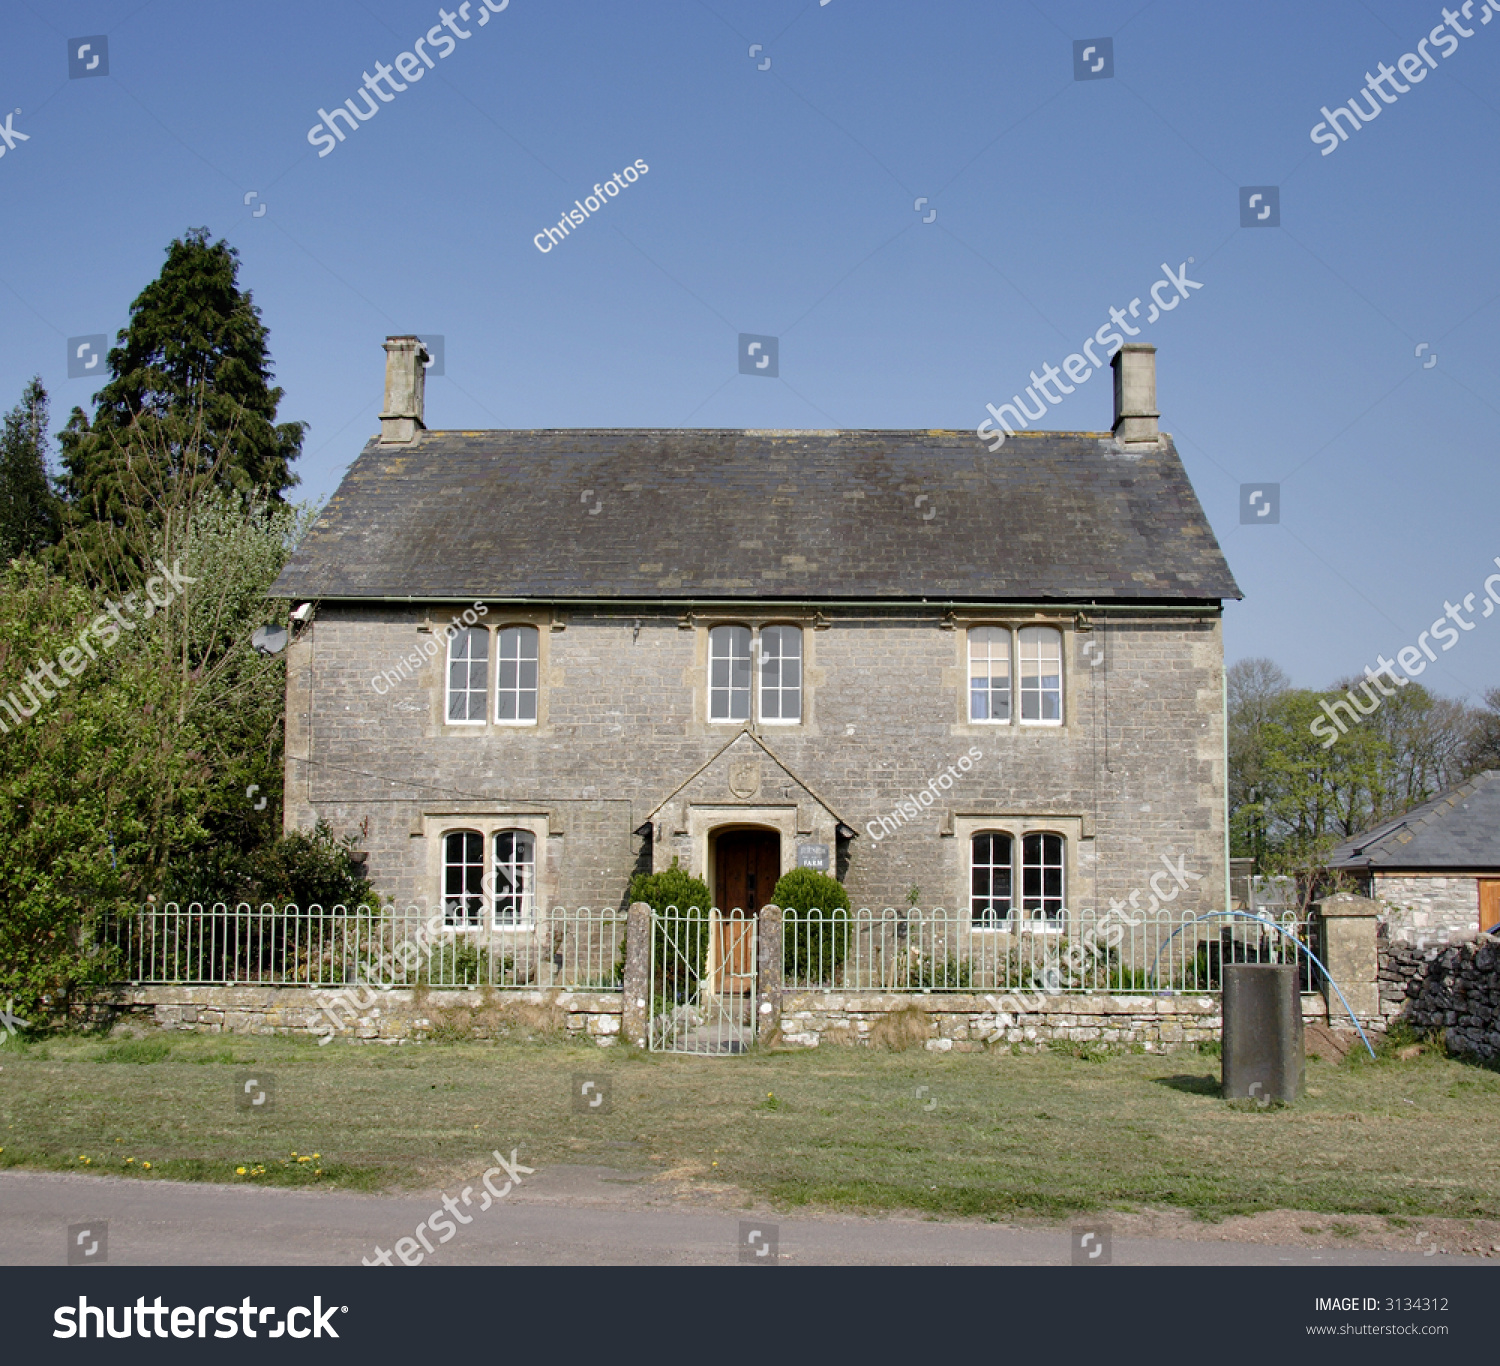 Natural Stone English Farmhouse in Rural Southern England #3134312